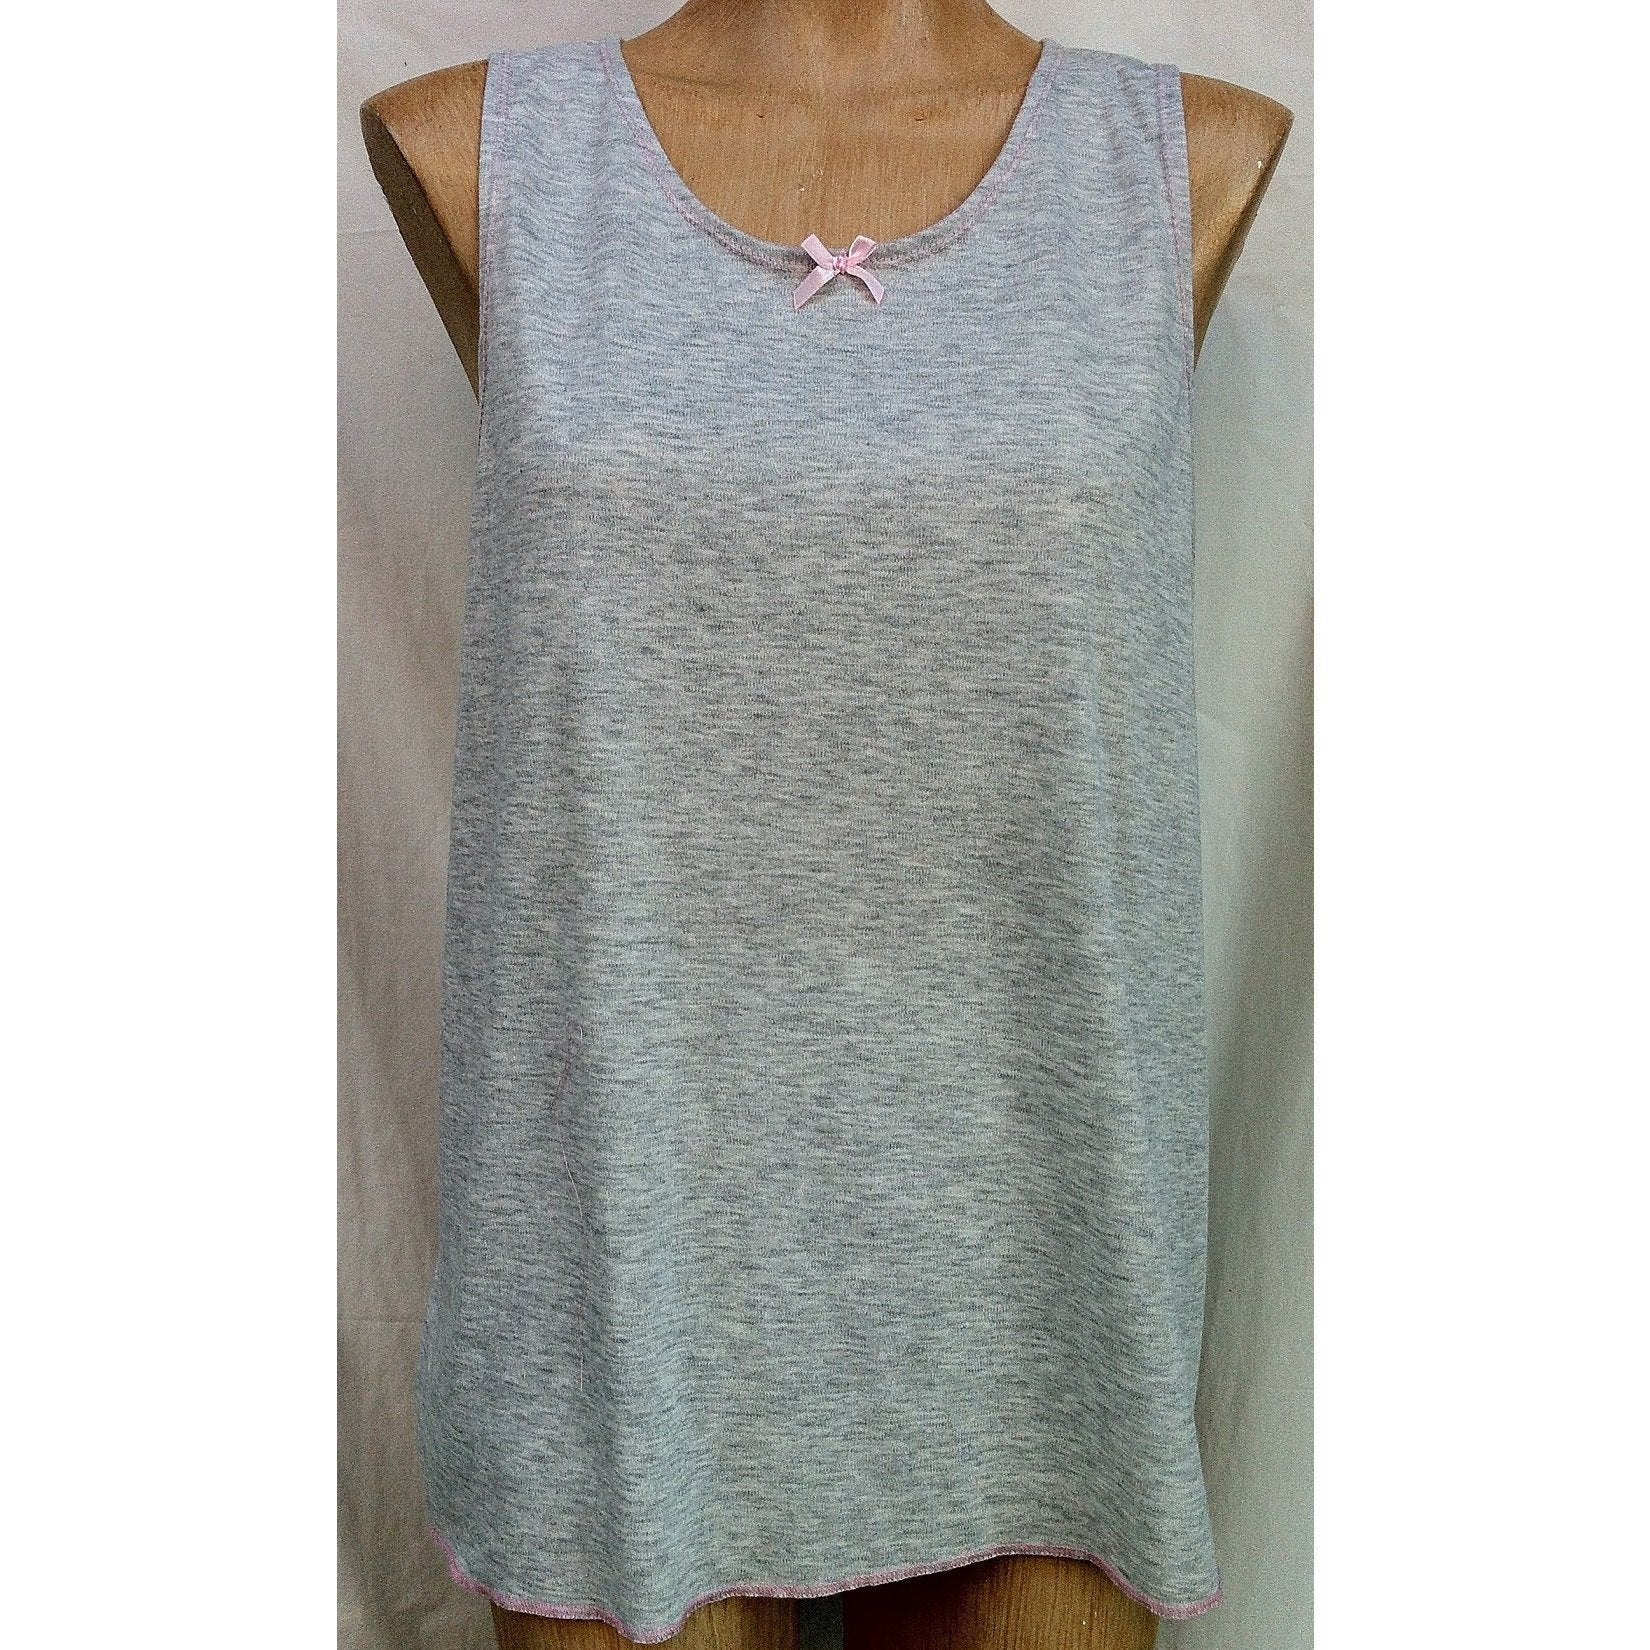 (L1) Ladies SINGLET - MARLE GREY with Pink Trim - Adaptive Fitz Clothing